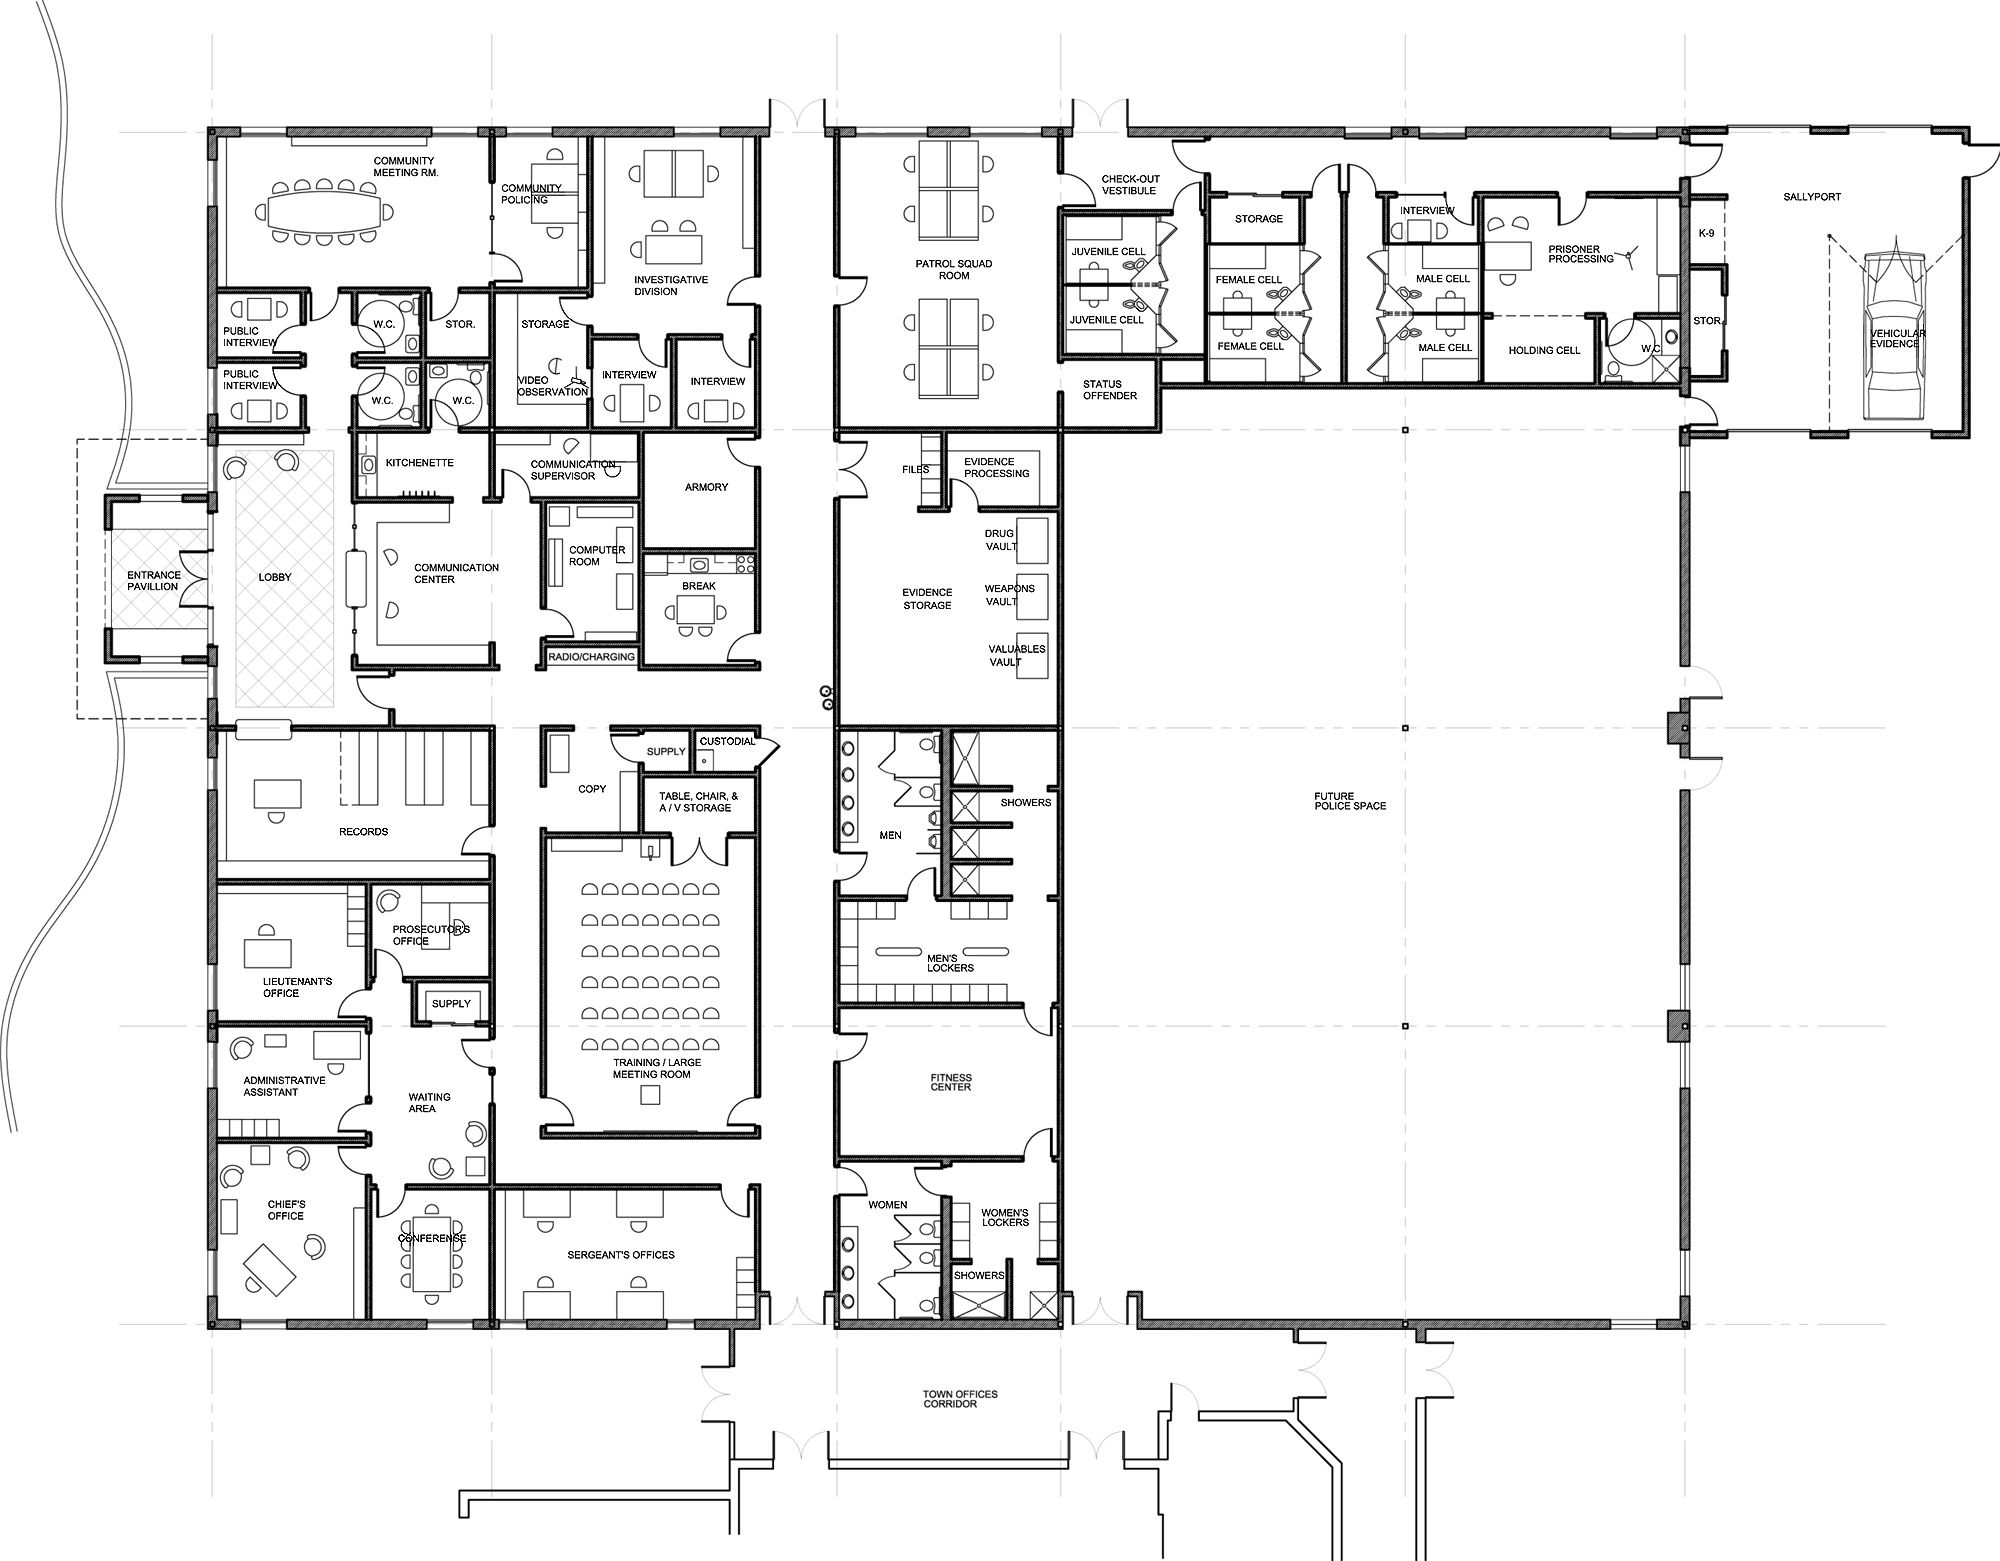 Astonishing floor plans blueprints on floor with home for Floor plan blueprint